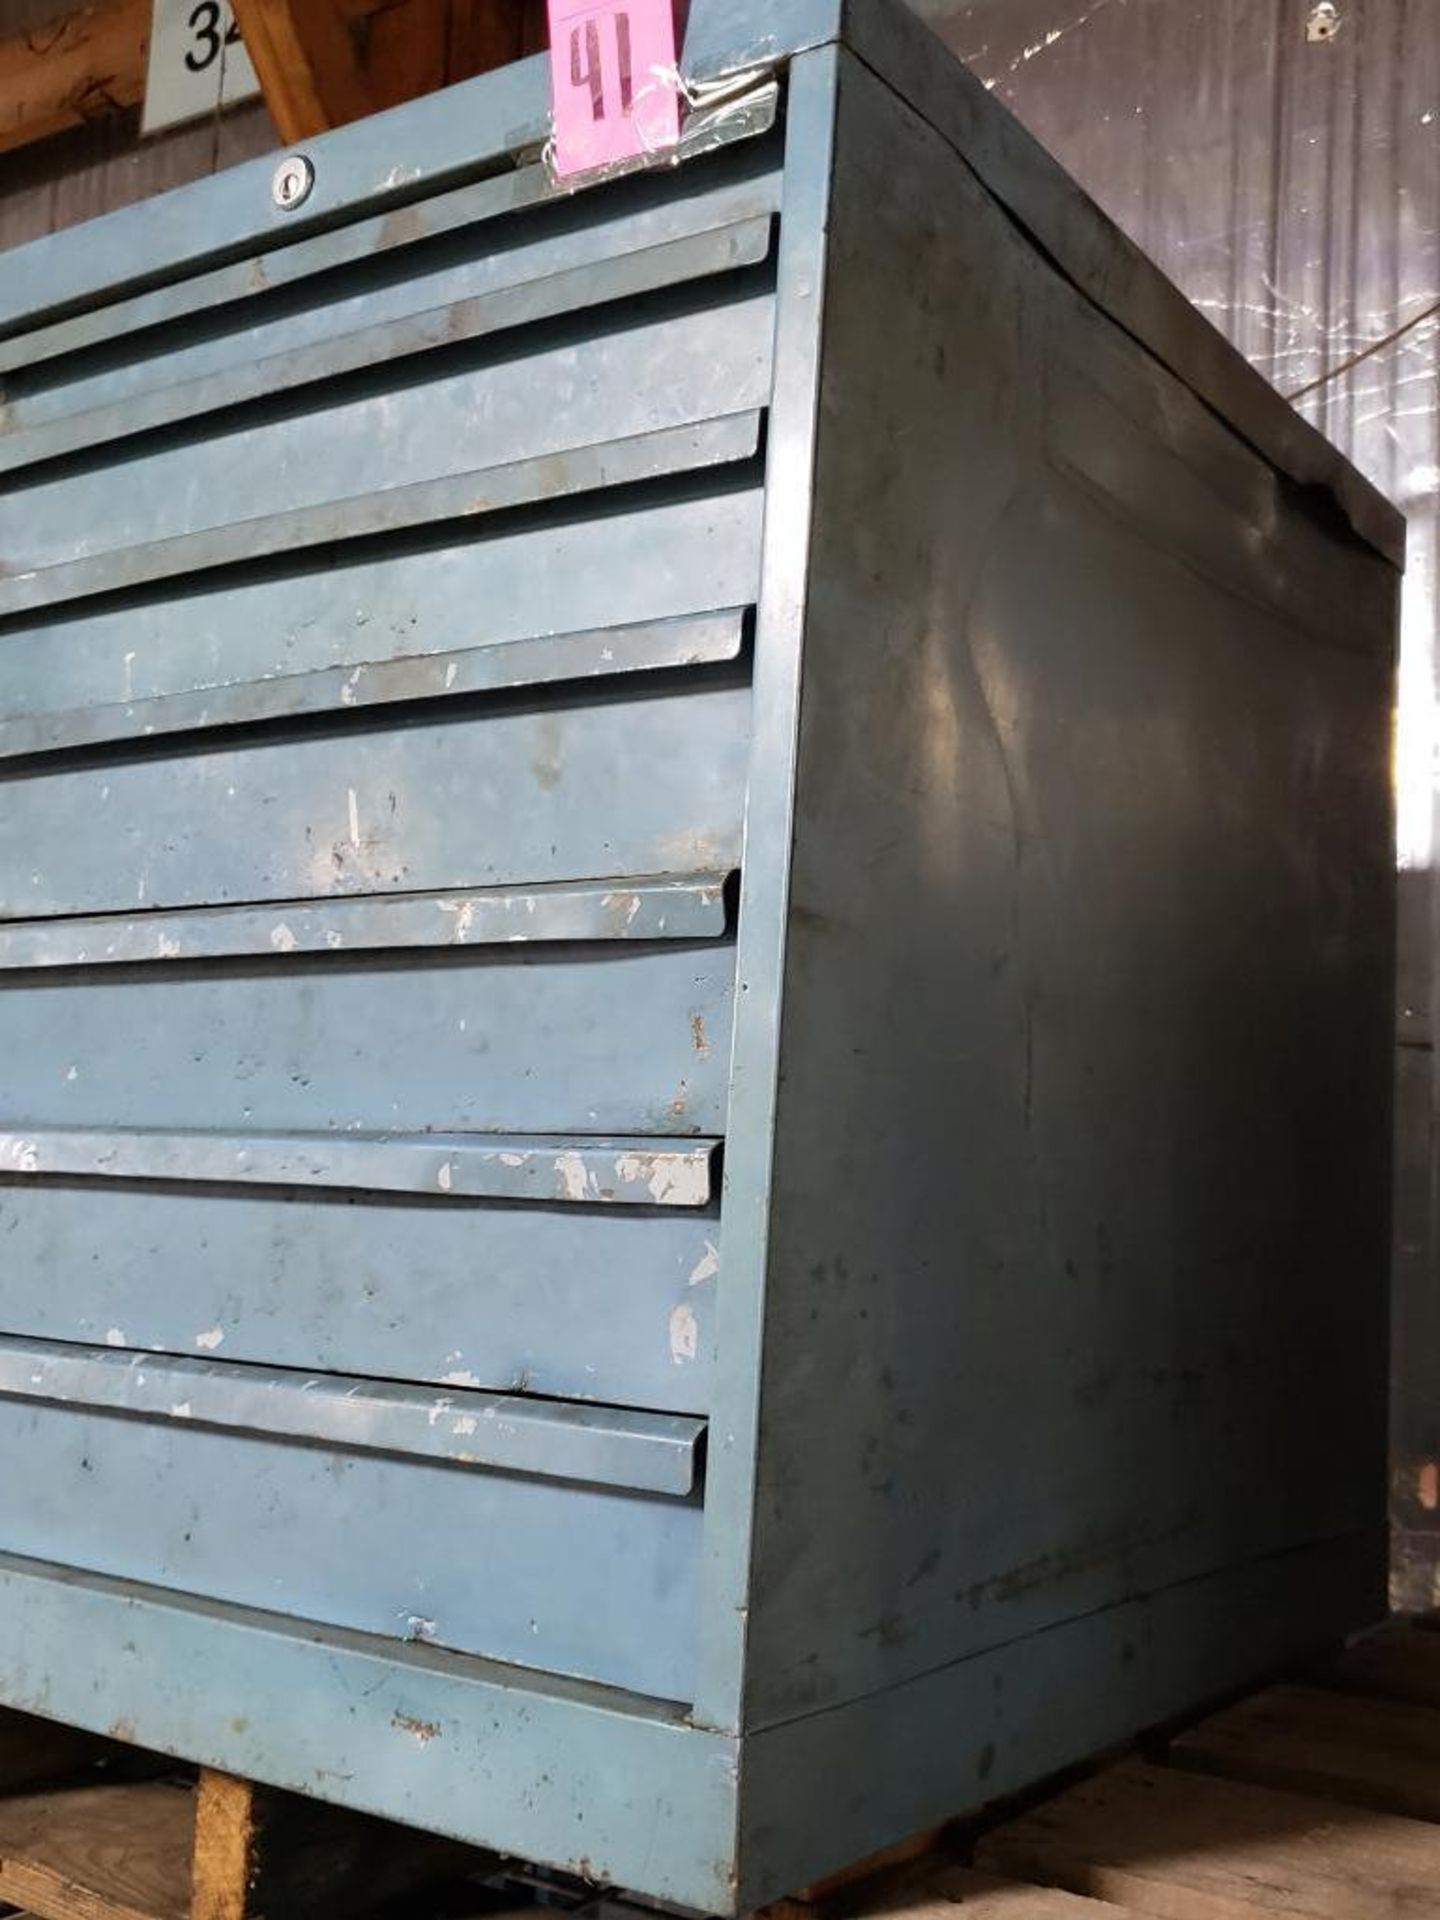 Lot 41 - 7 drawer Lista tool cabinet. Overall dimensions 27.5Tx23Wx28D.